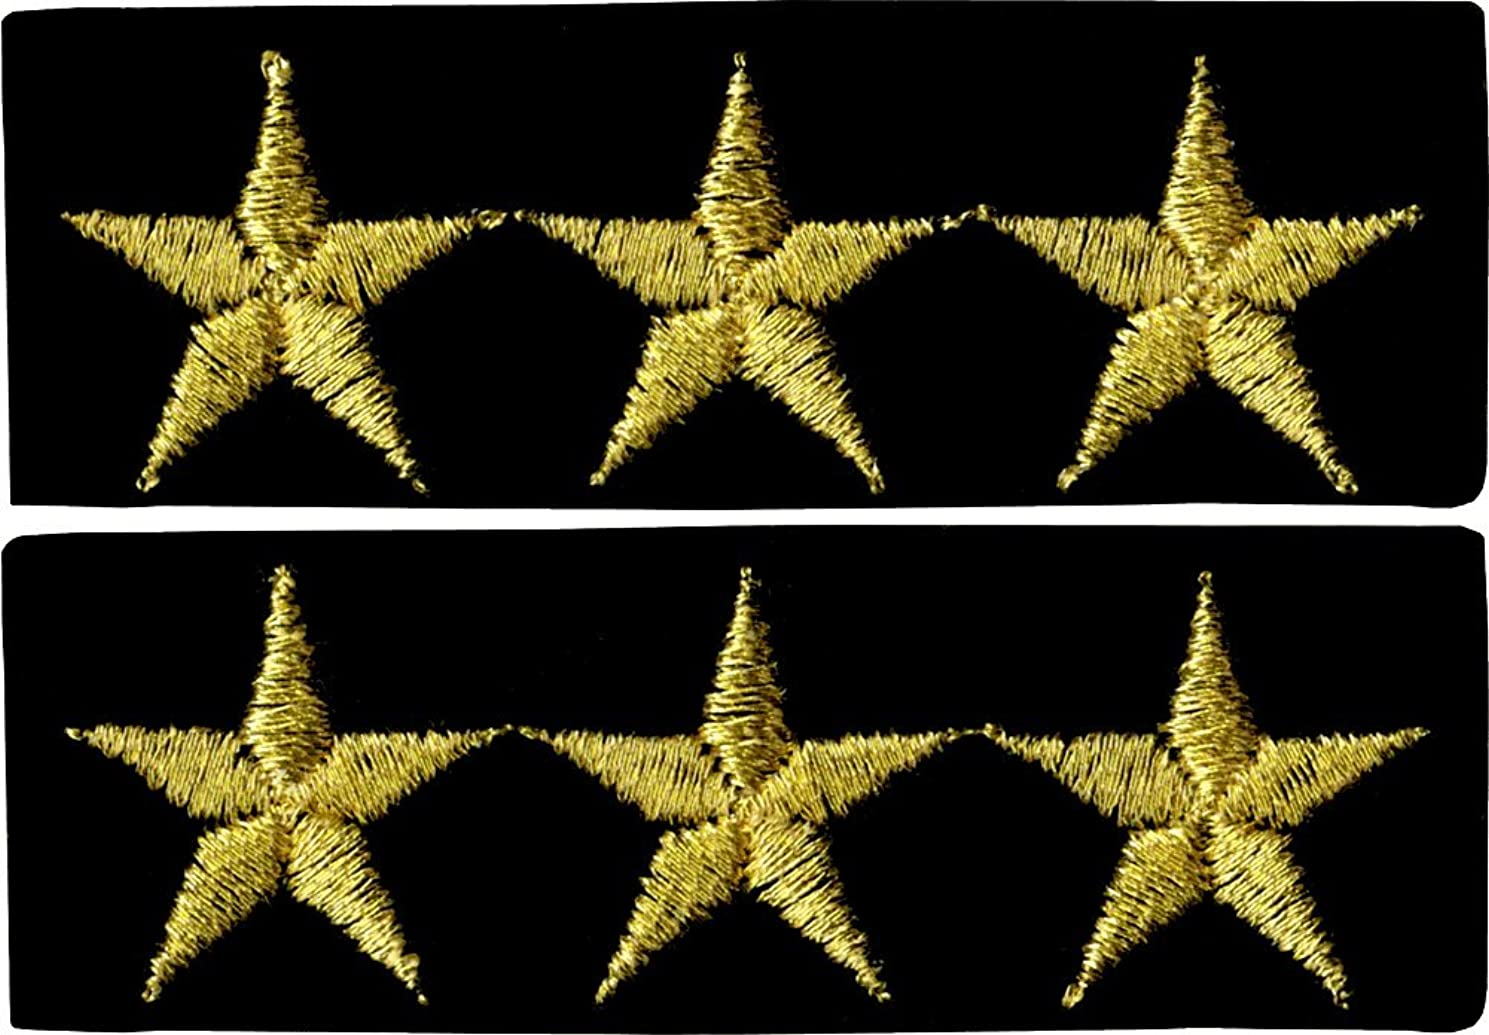 0 Military 3 Star General Logo - 2 FOR THE PRICE OF ONE!!! - Embroidered Iron On or Sew On Patch, Gold, Black, 2.625